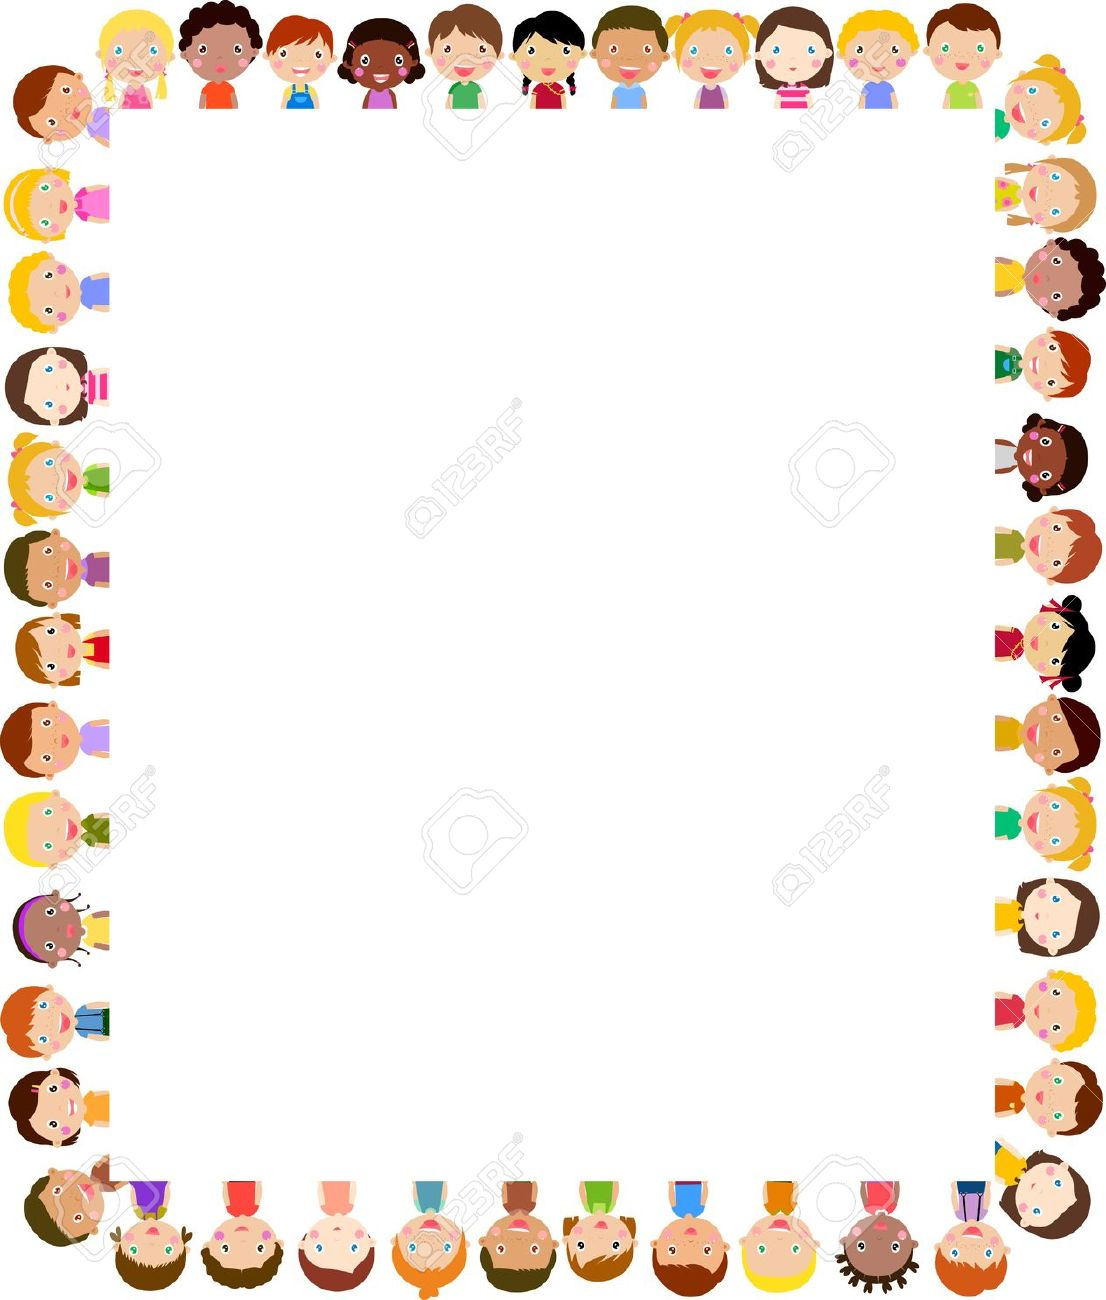 People border clipart banner freeuse library People border clipart - ClipartFest banner freeuse library